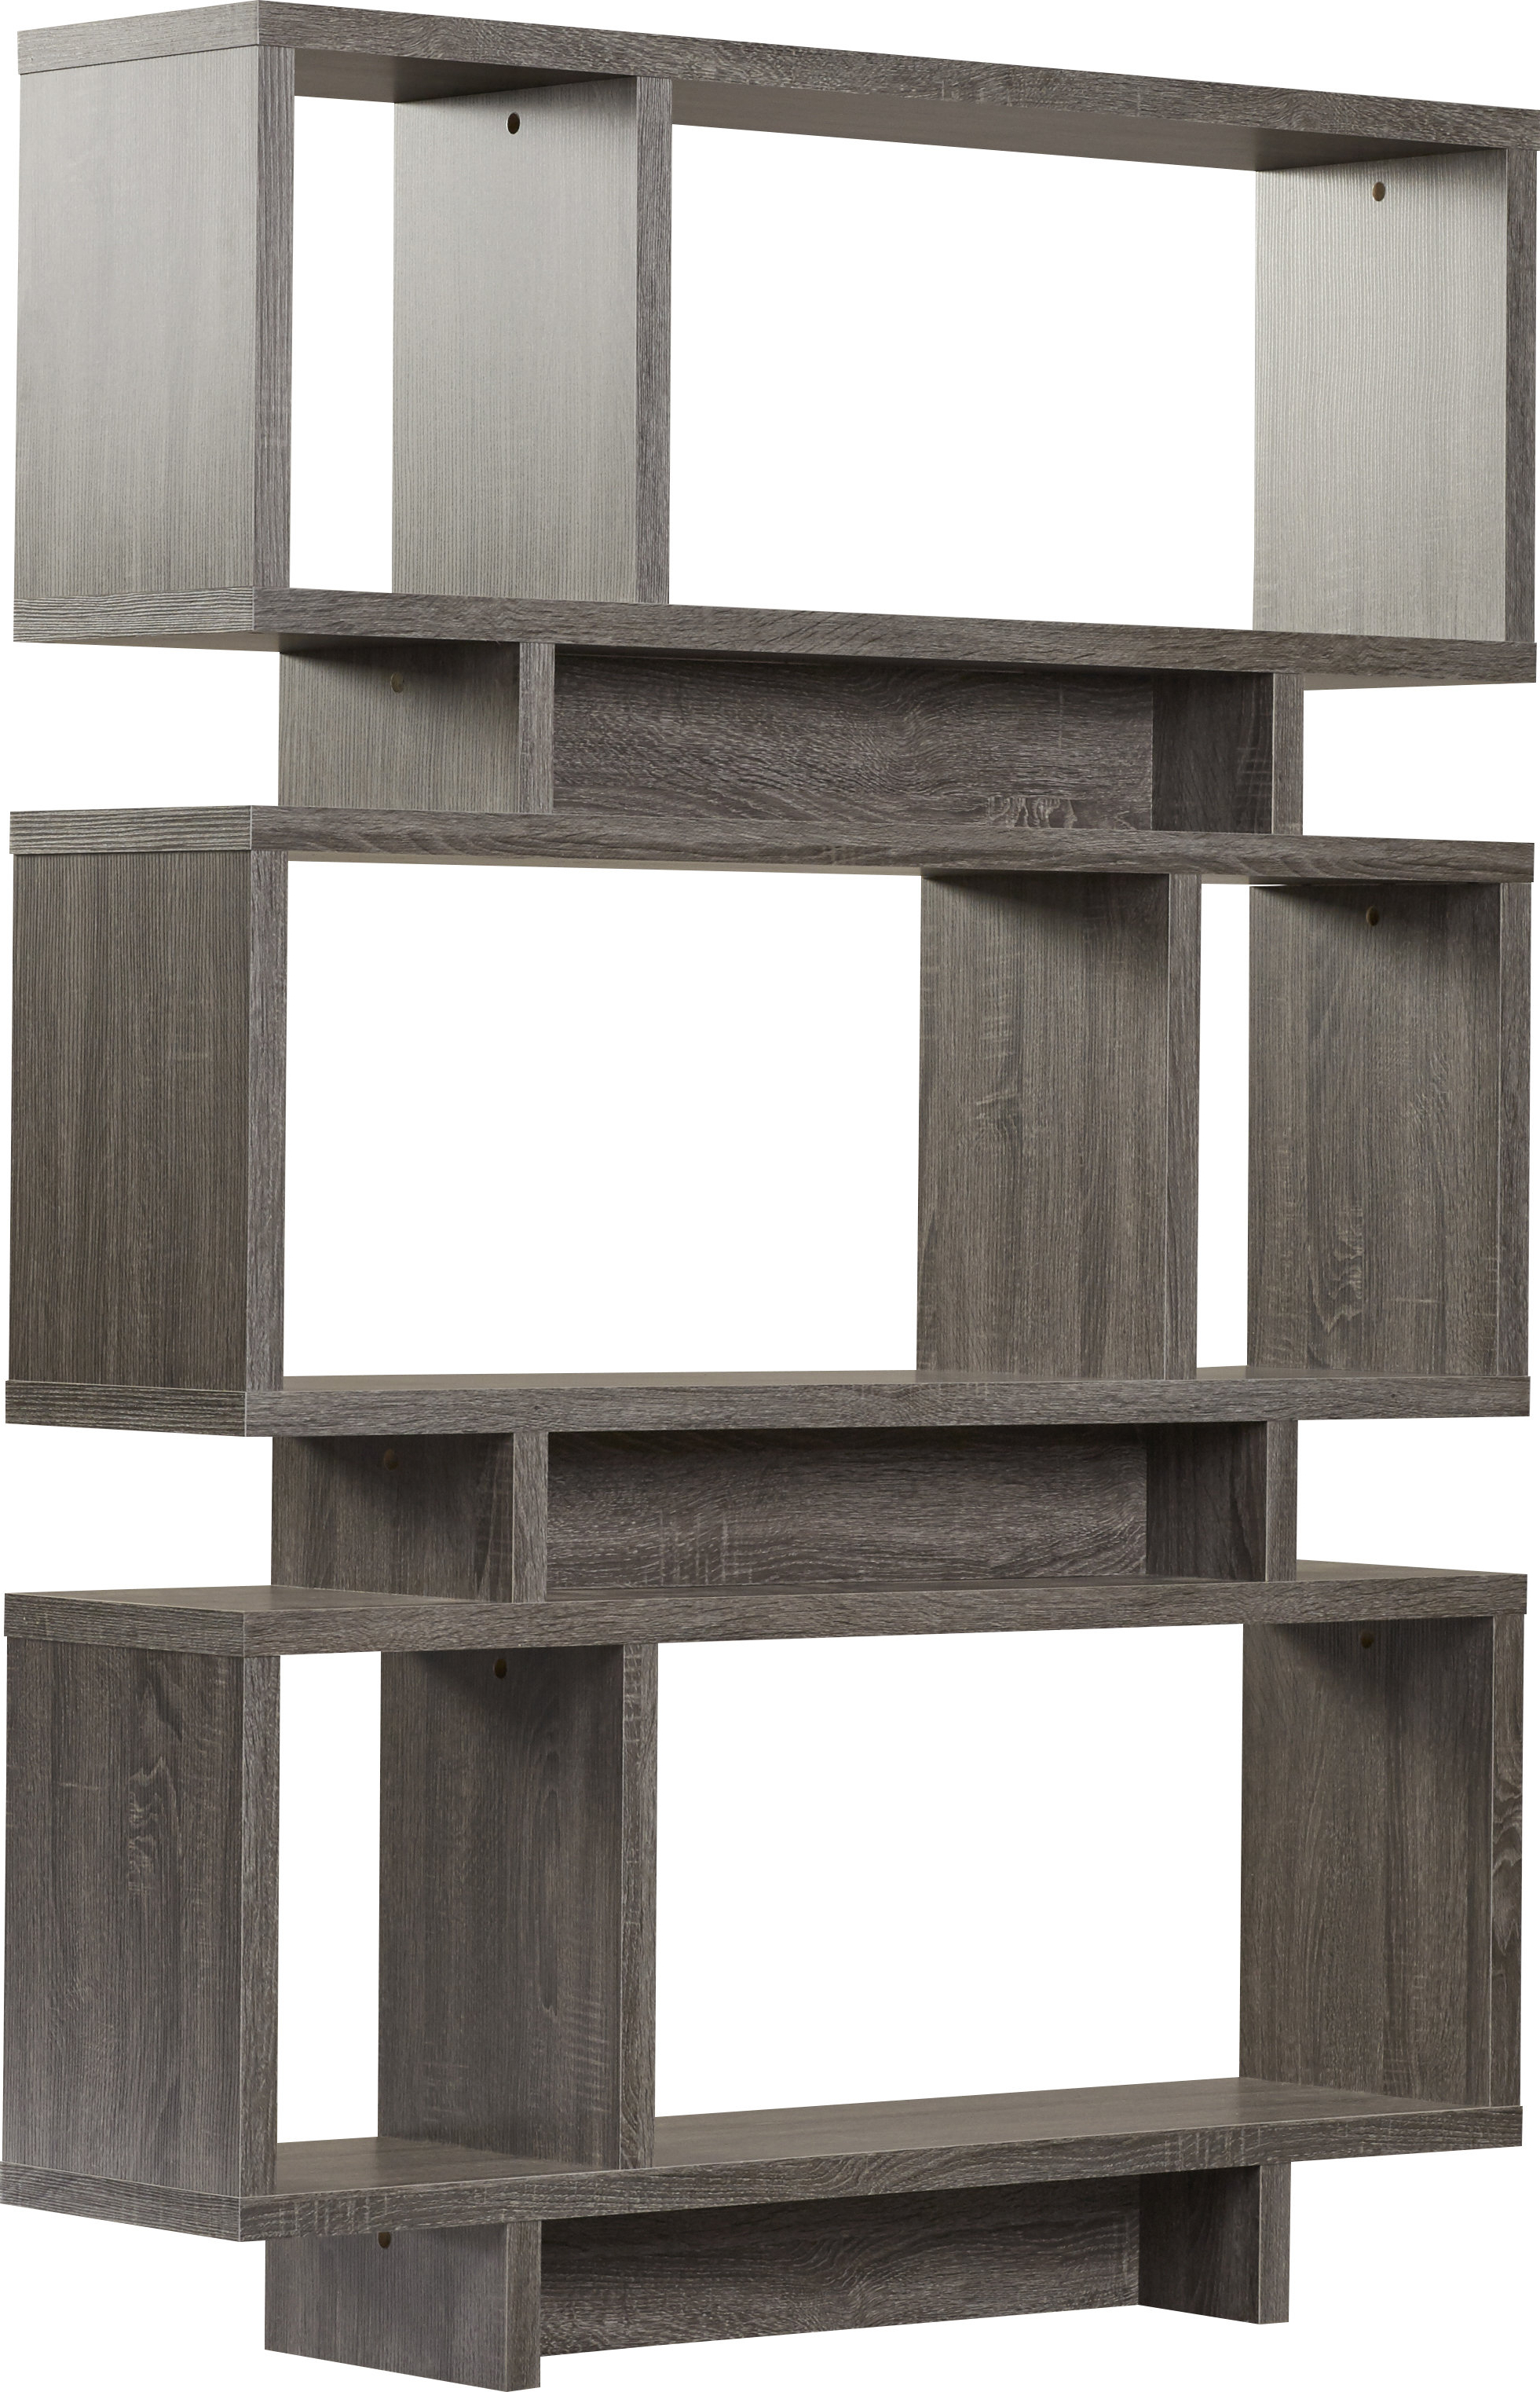 2020 Ignacio Standard Bookcases Regarding Cullison Standard Bookcase (Gallery 7 of 20)